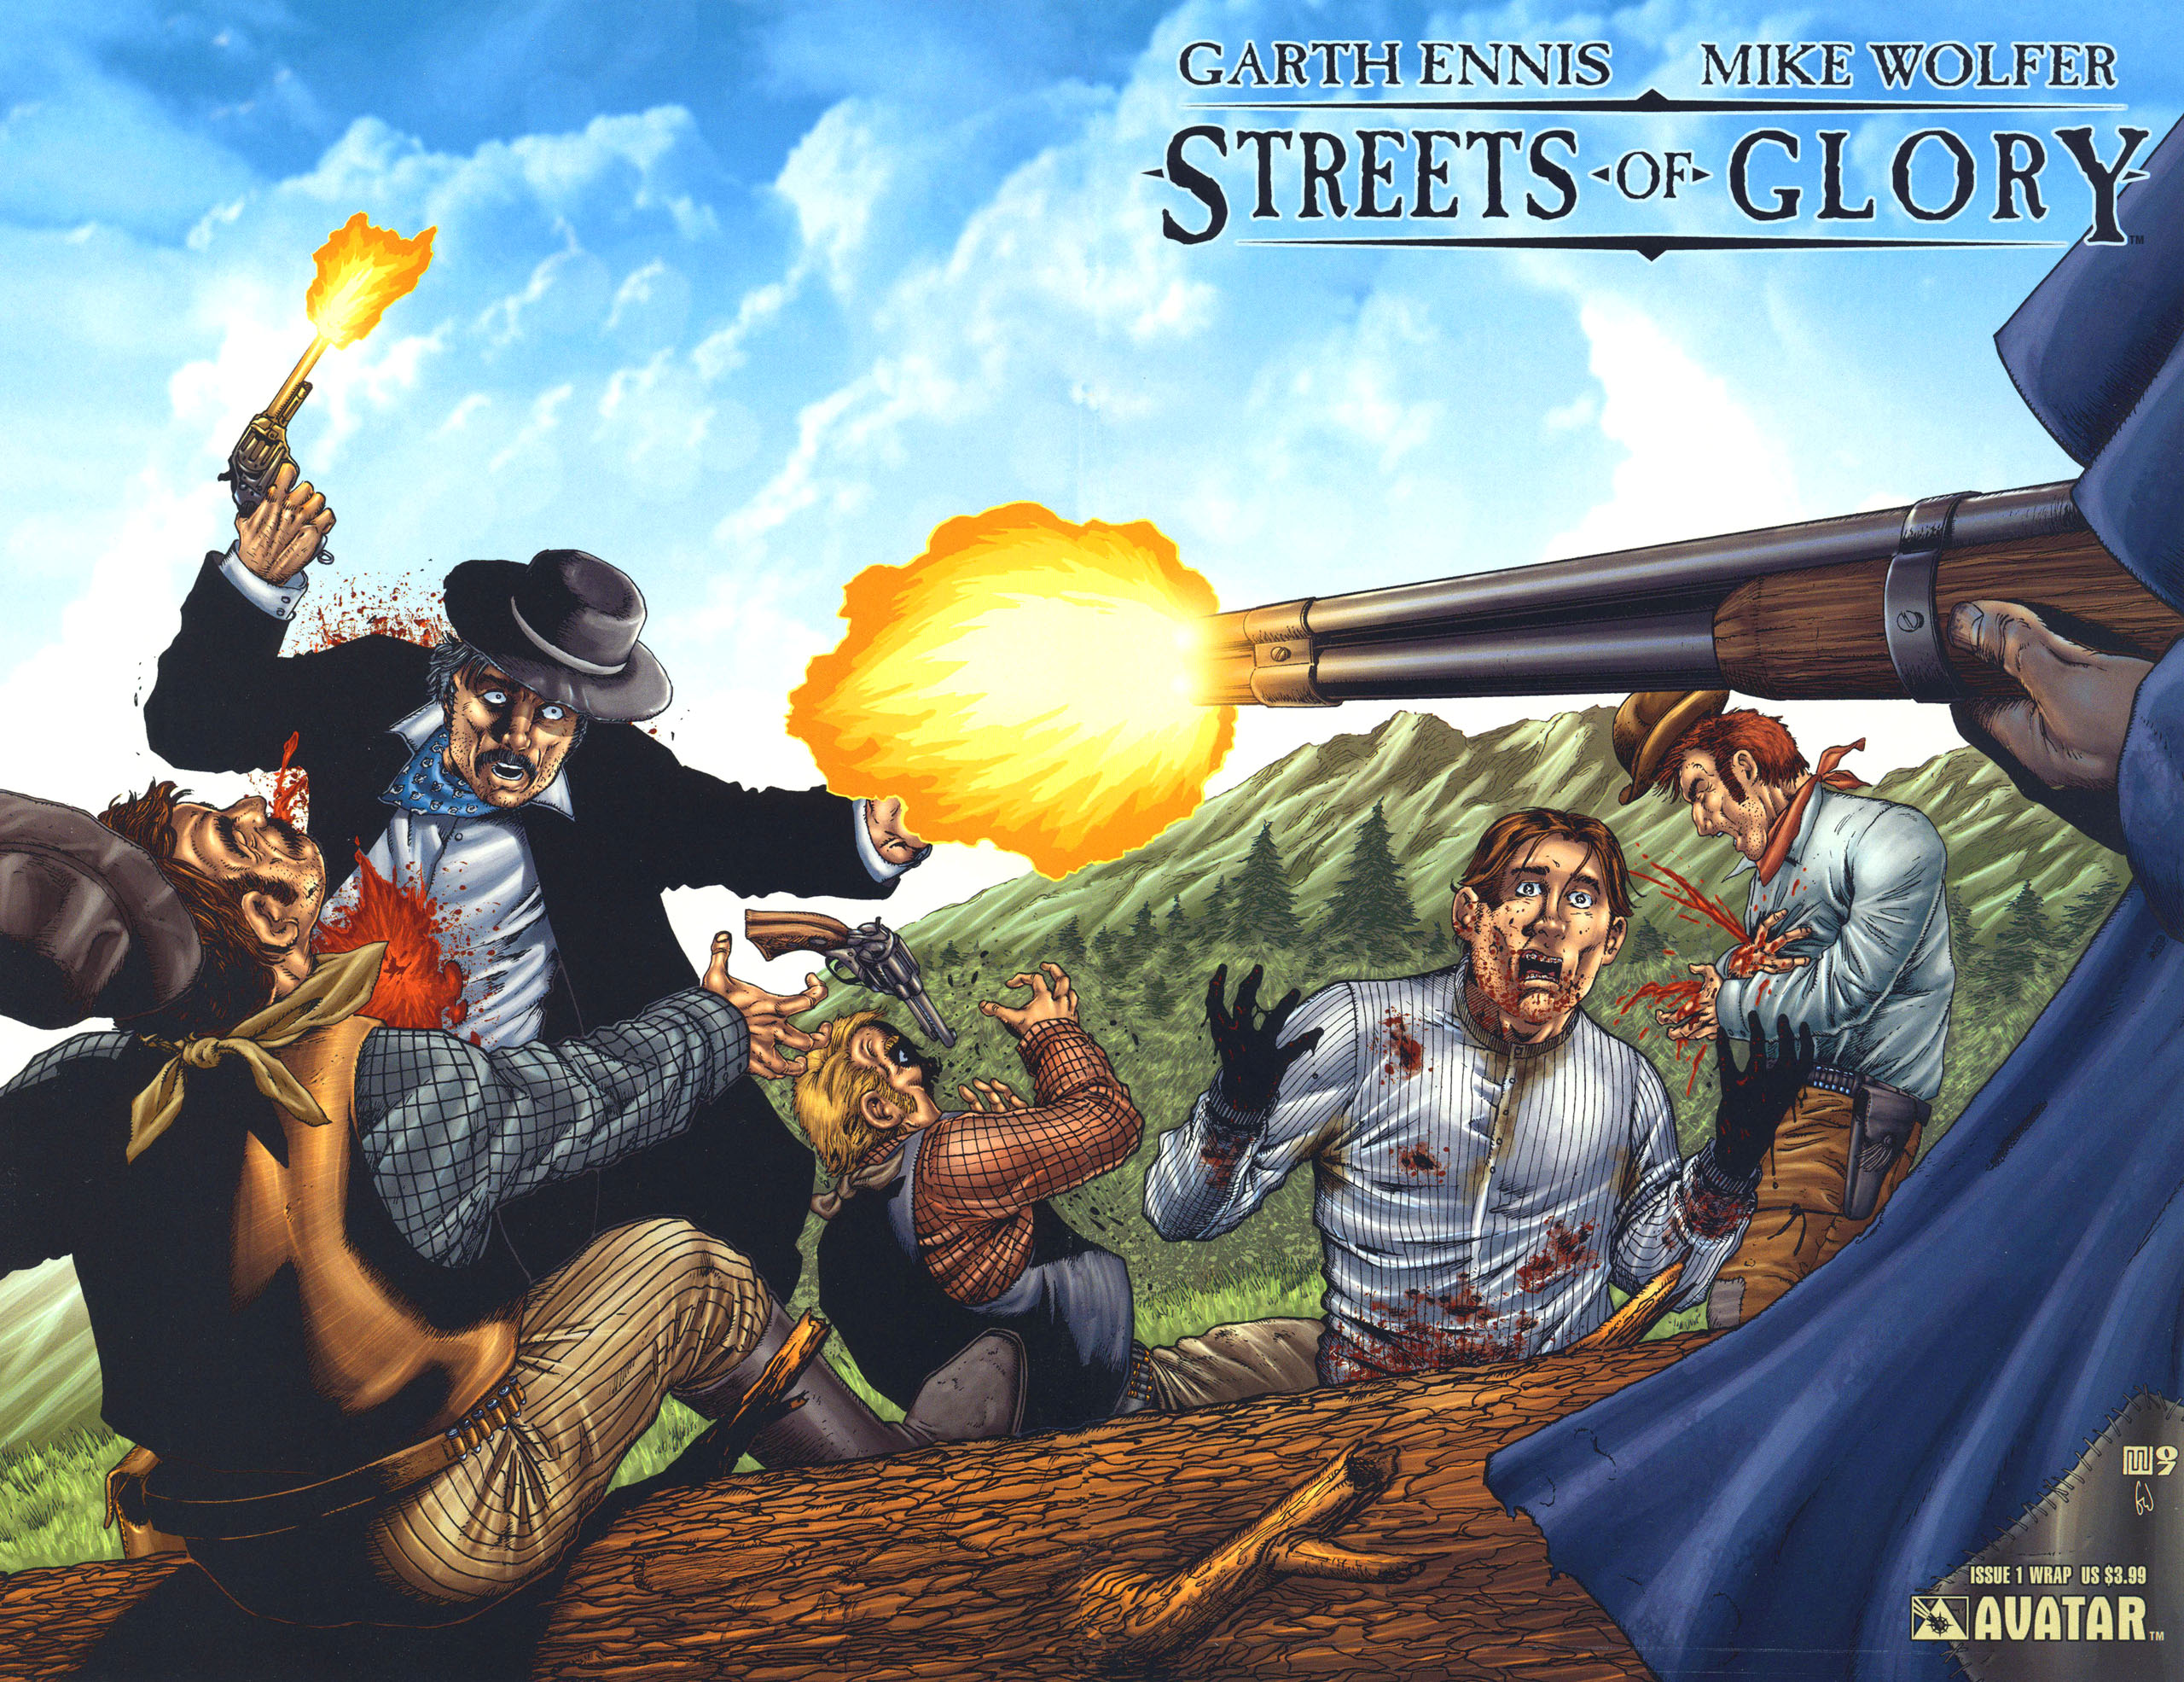 Read online Garth Ennis' Streets of Glory comic -  Issue #1 - 2